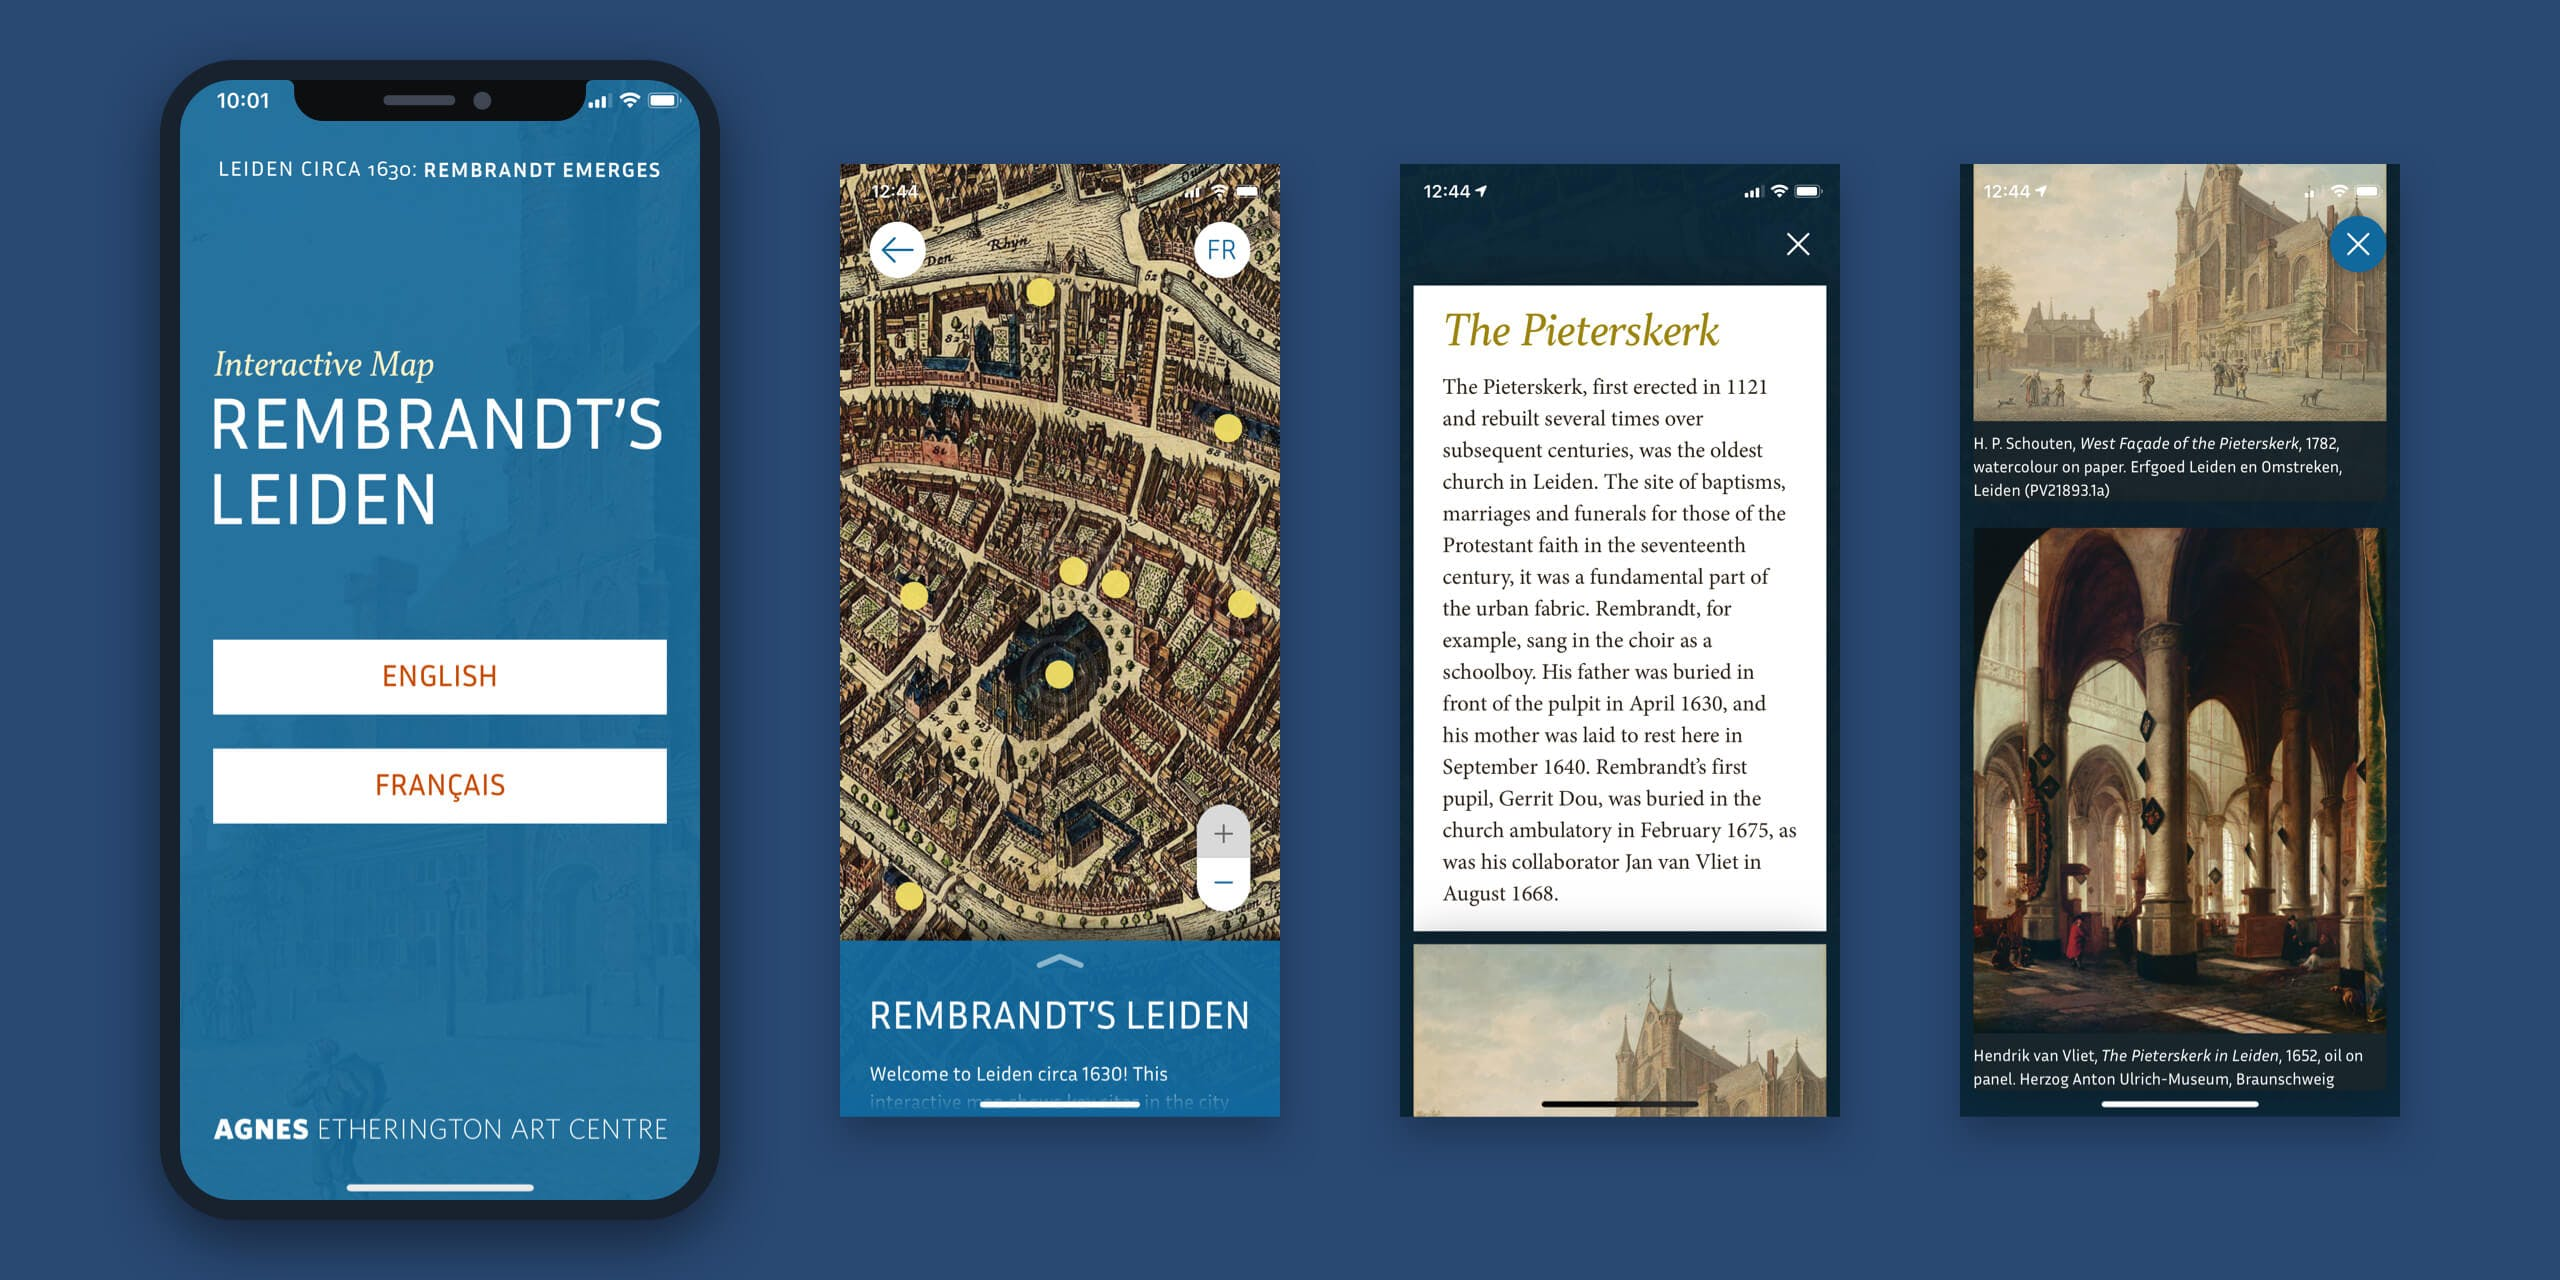 A mockup of an iPhone screen displaying the design for the responsive web app Rembrandt's Leiden.